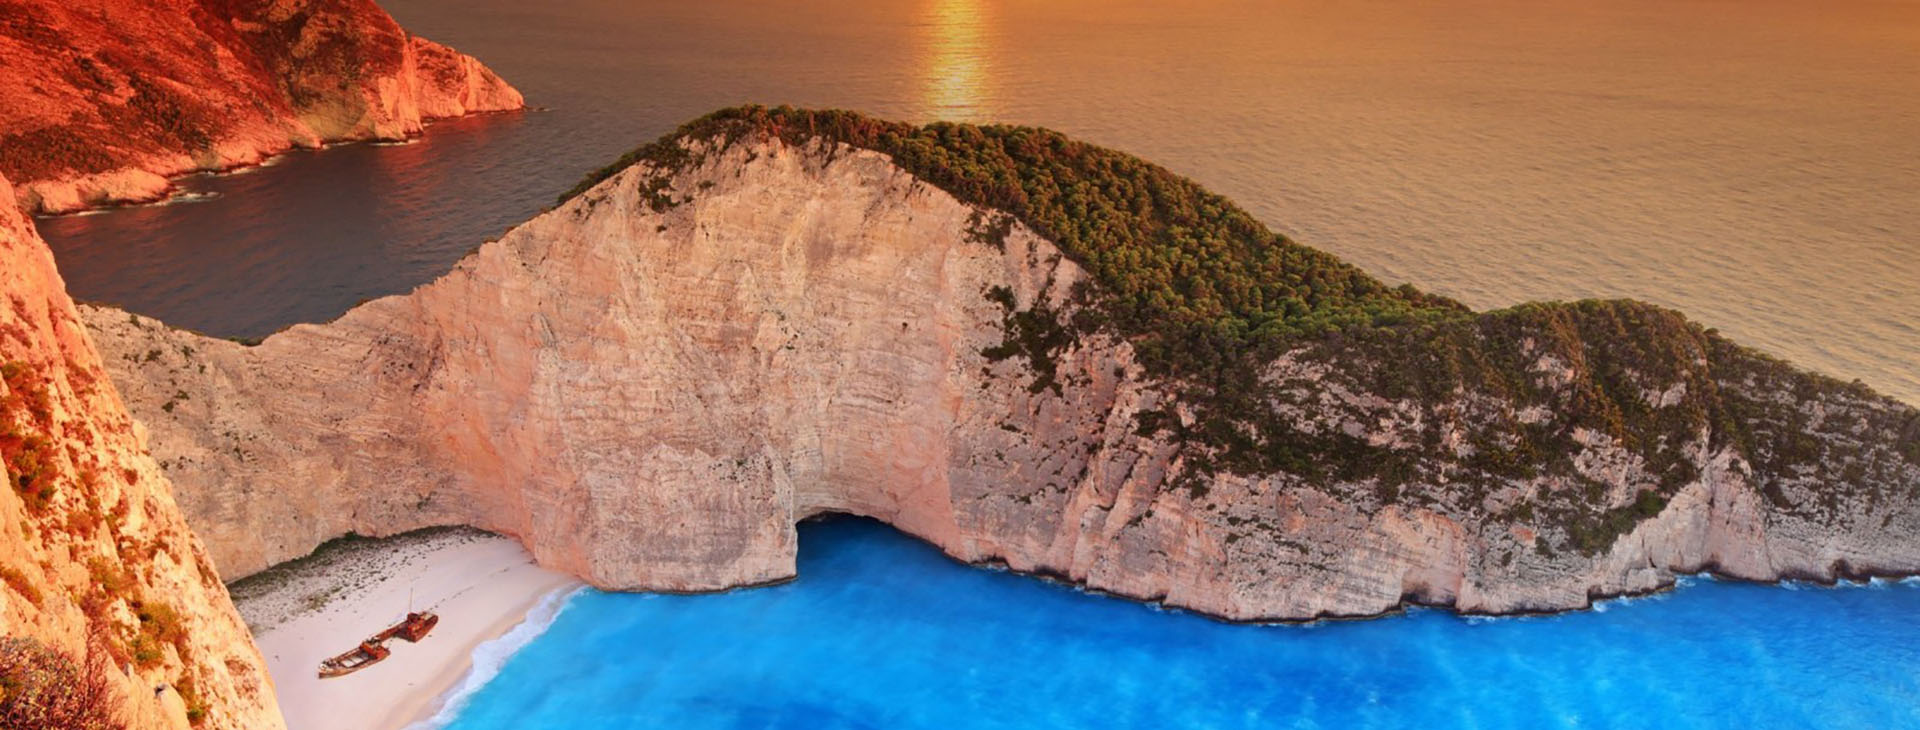 Sunset over Smugglers Cove on Zakynthos island